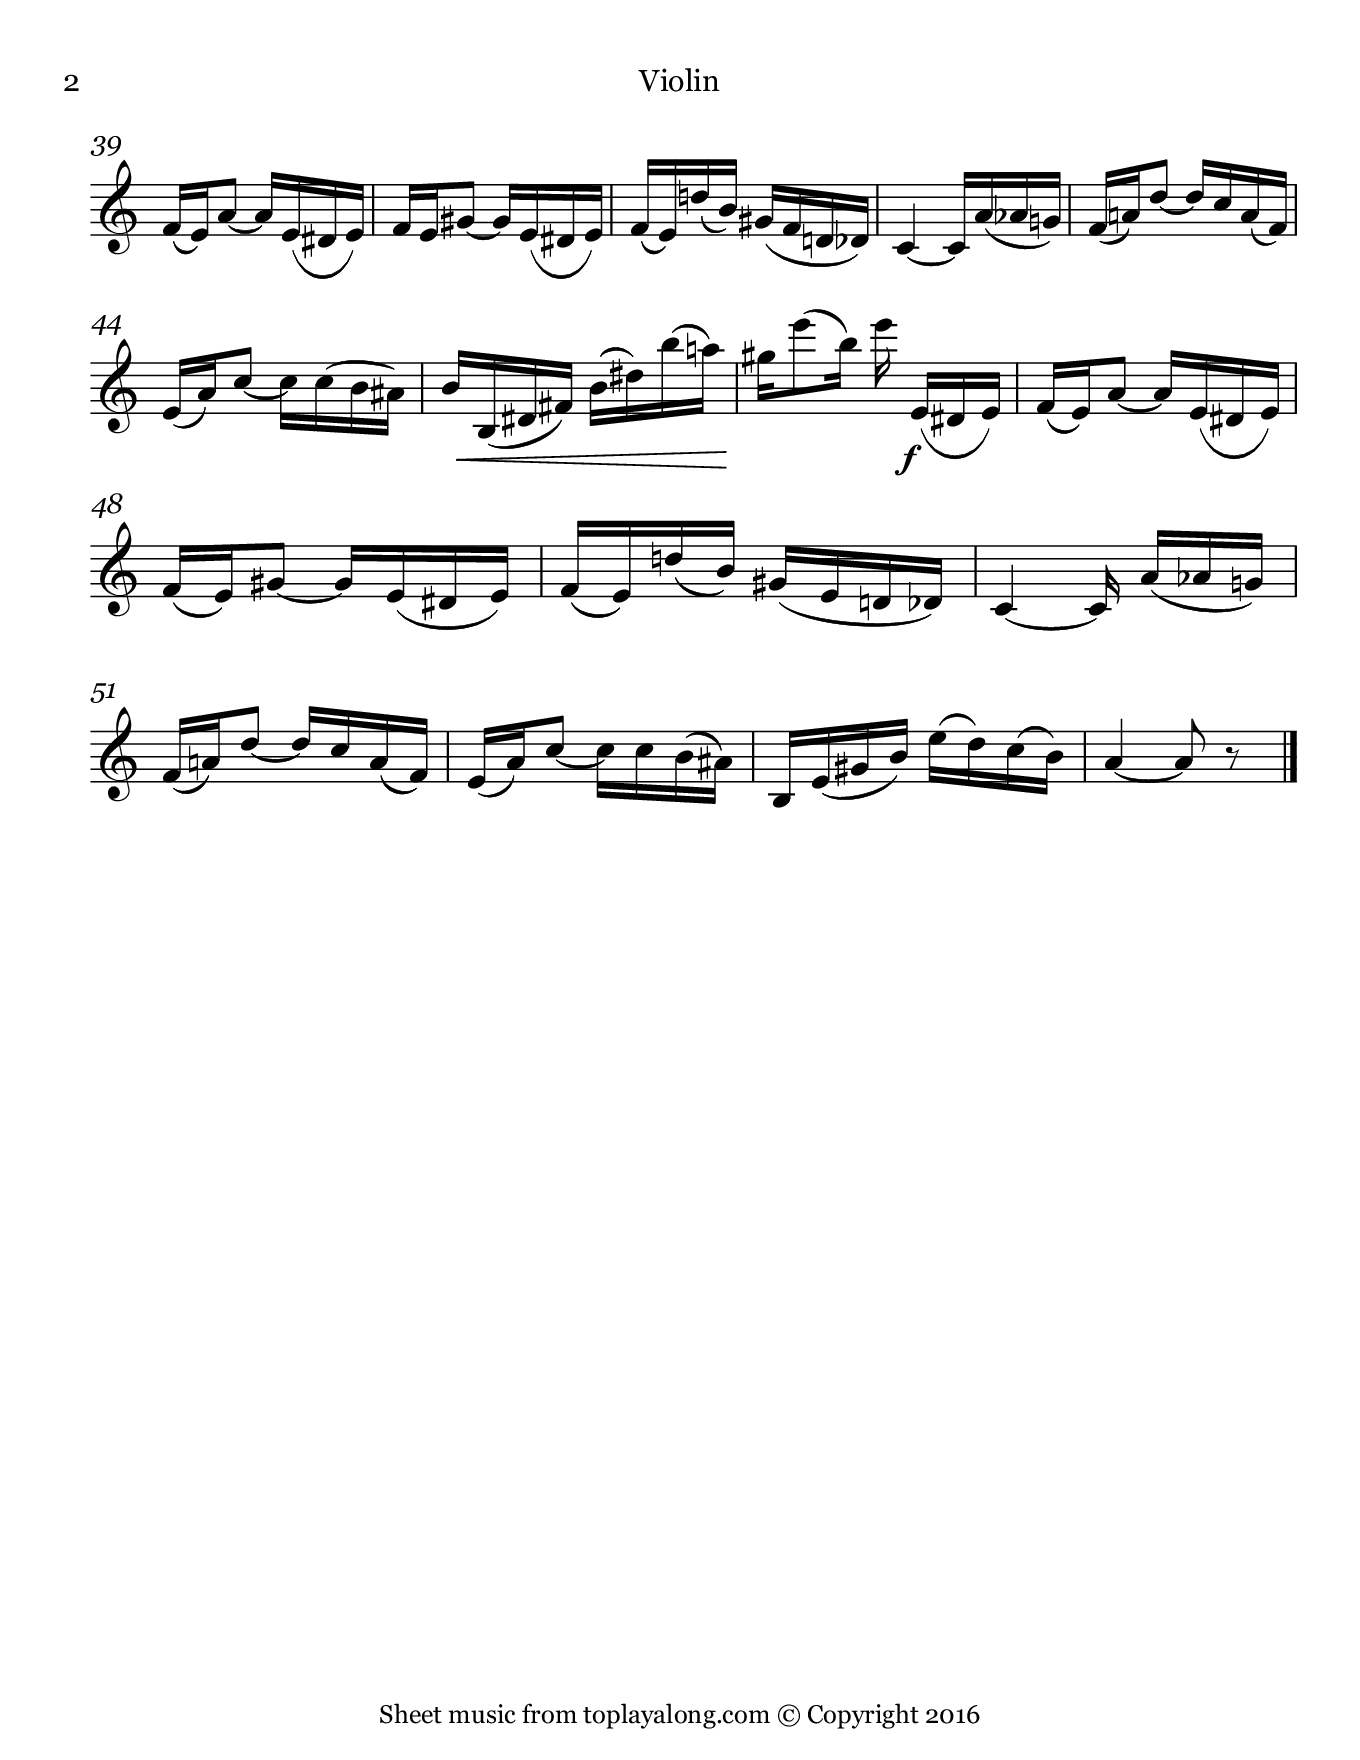 Tico-Tico no Fubá by Abreu. Sheet music for Violin, page 2.